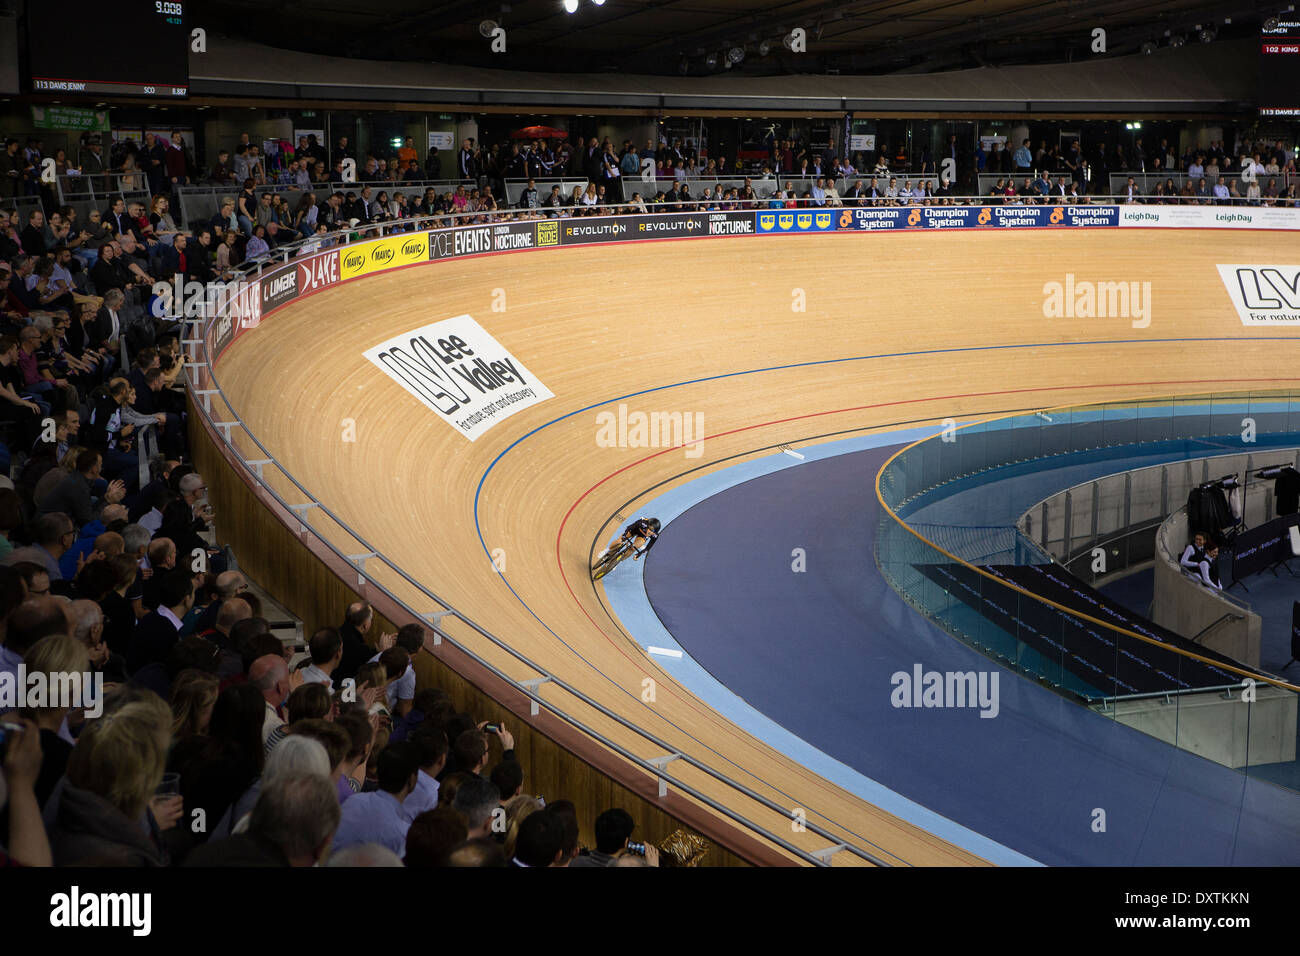 A cyclist races around the track at the London Olympic Velodrome - Stock Image